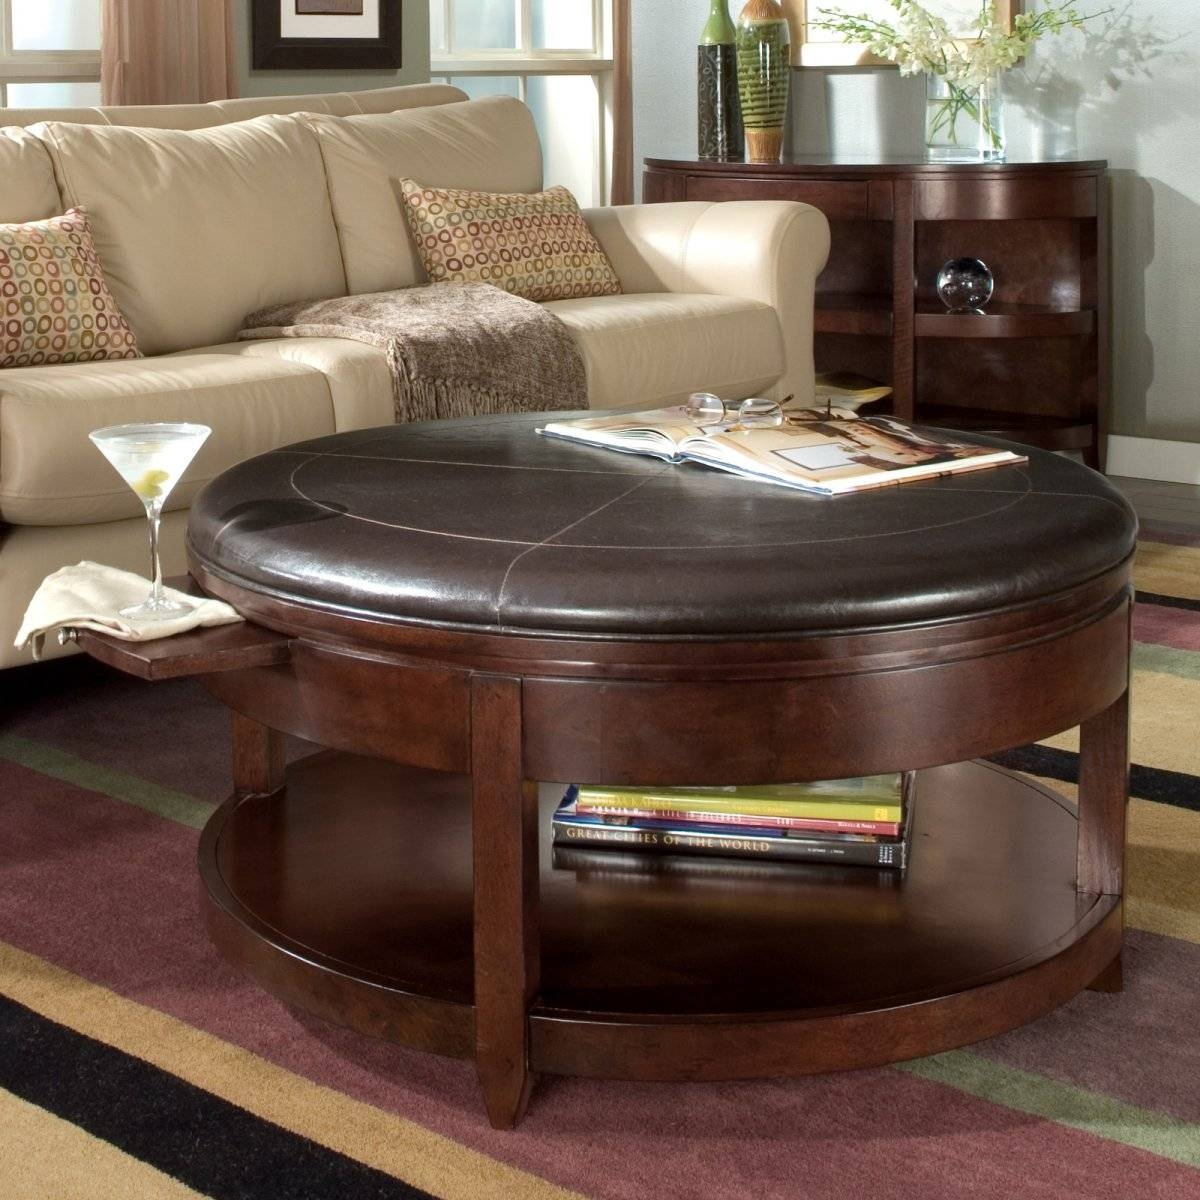 Coffee Table: Amazing Padded Coffee Table Ottomans Ottoman Target for Round Upholstered Coffee Tables (Image 3 of 30)